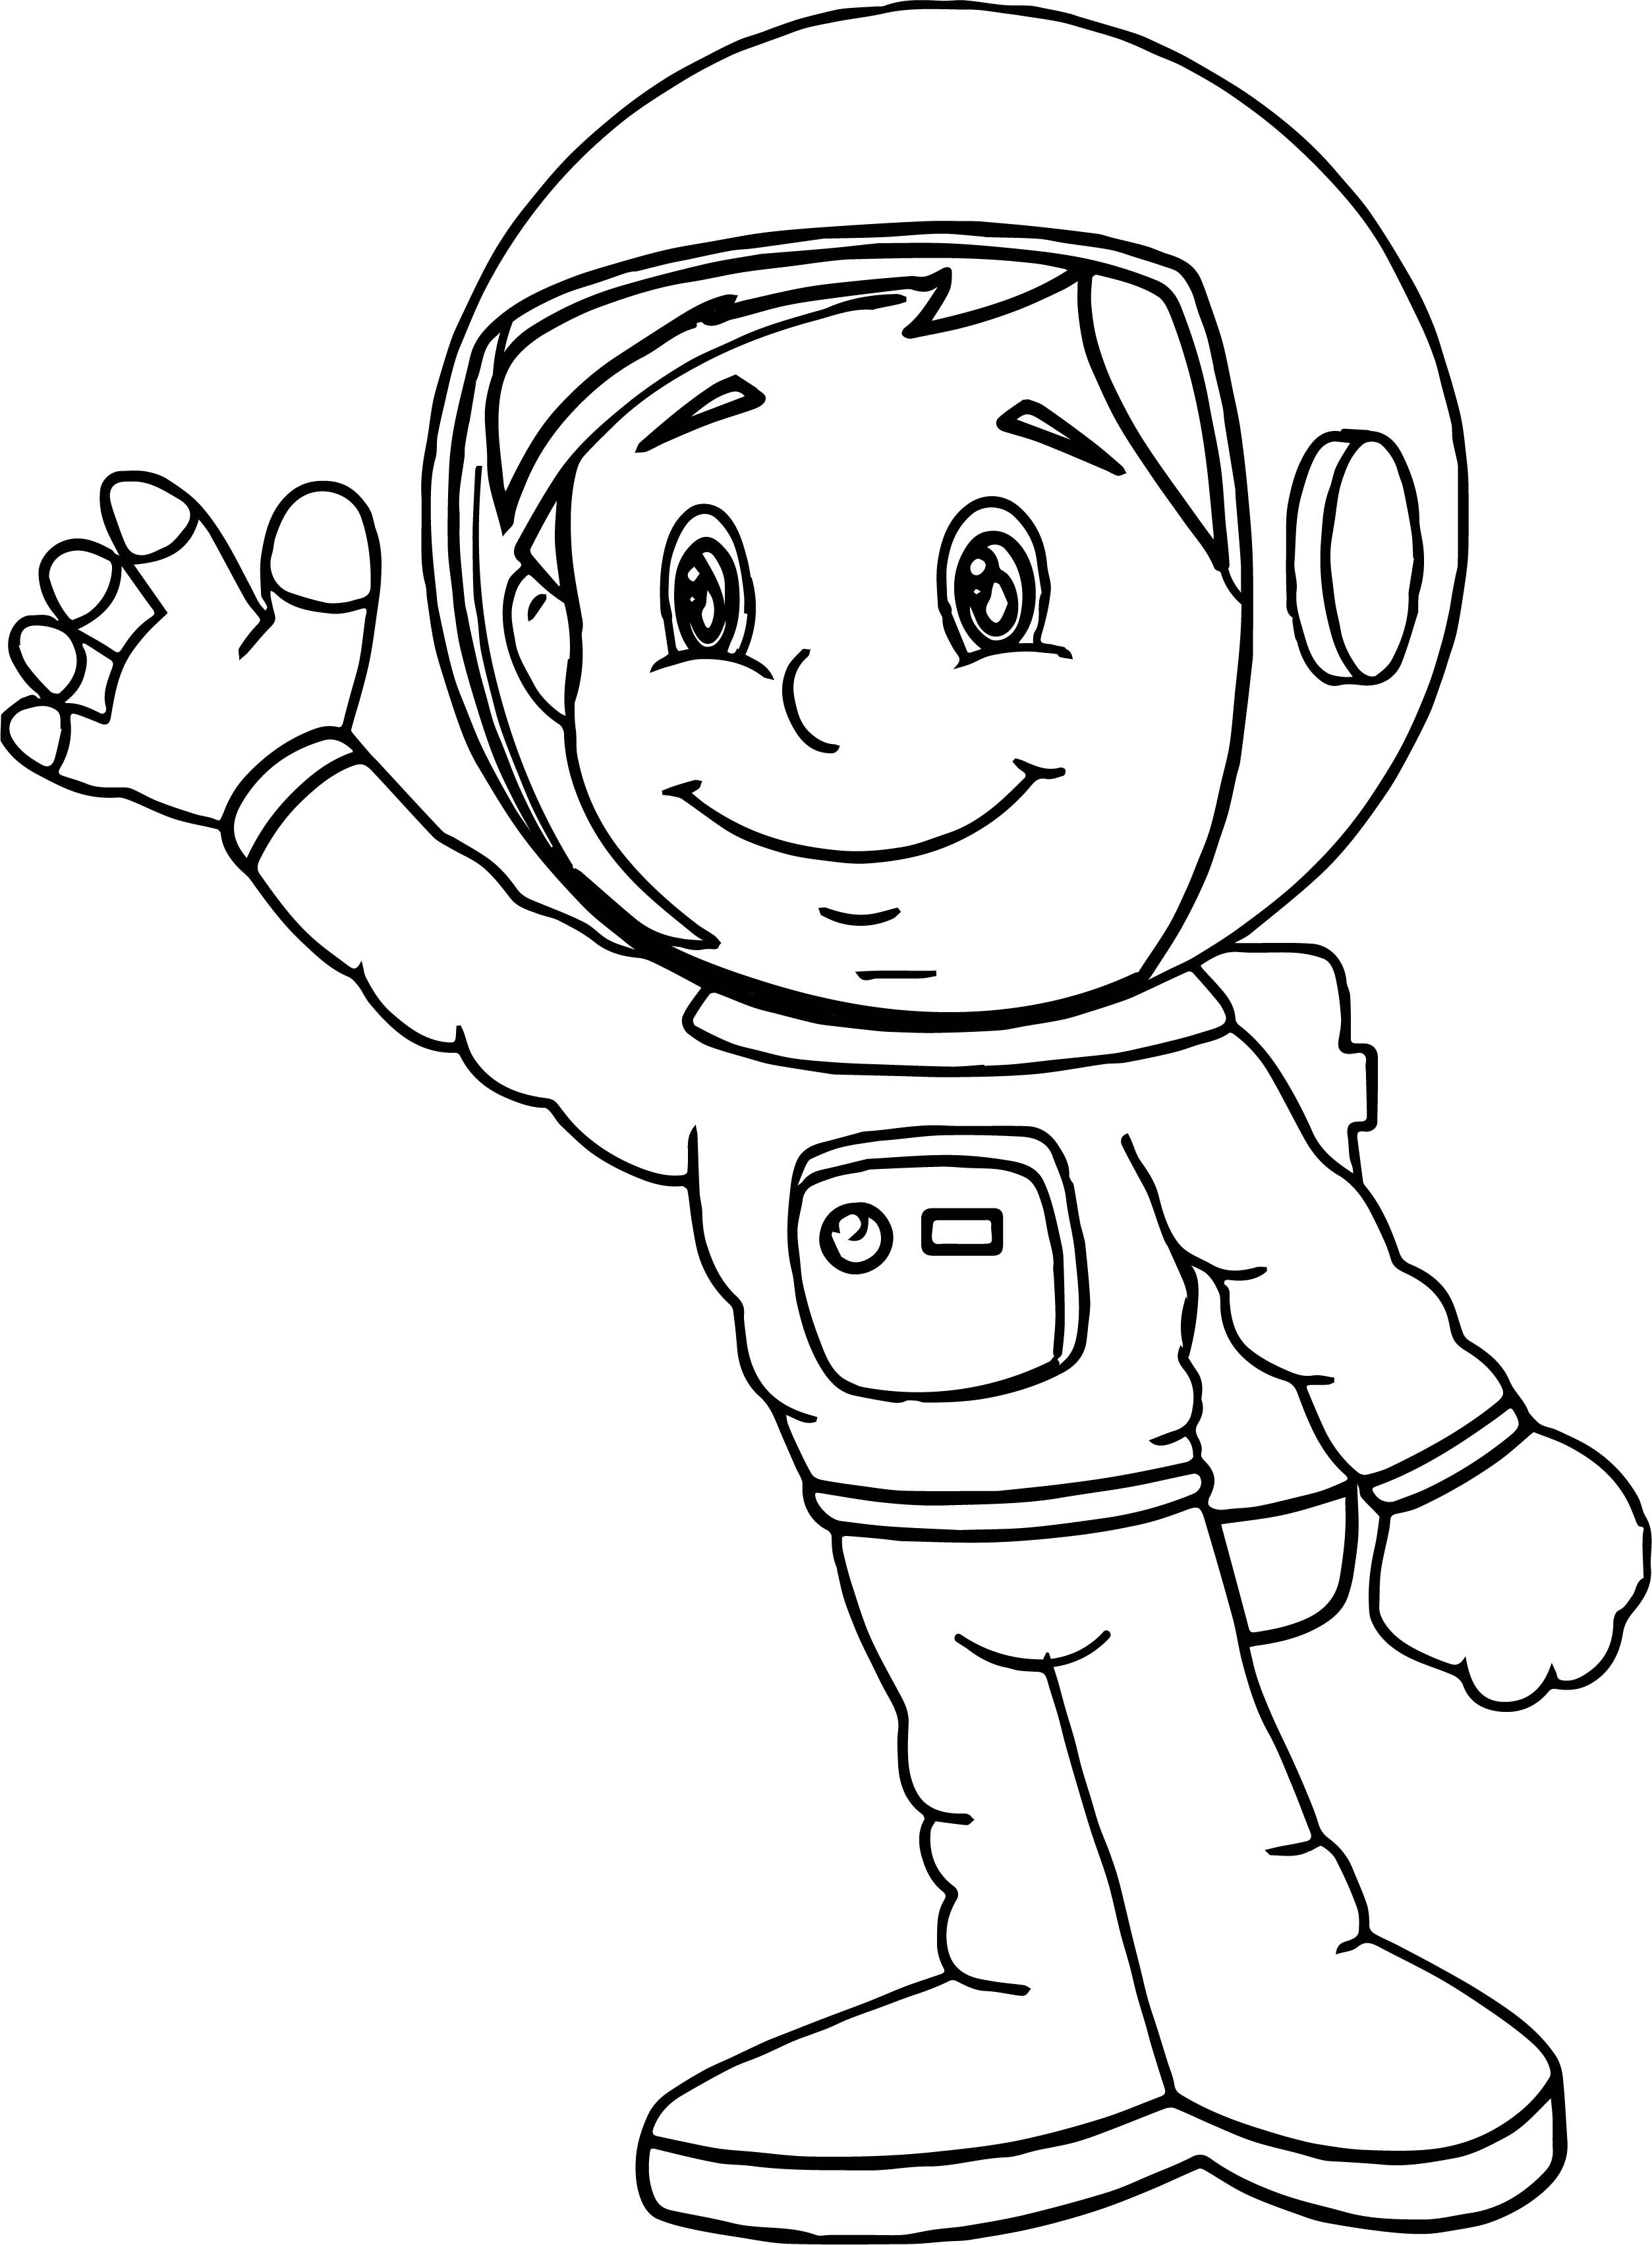 Free Astronaut Coloring Page Space Preschool Space Theme